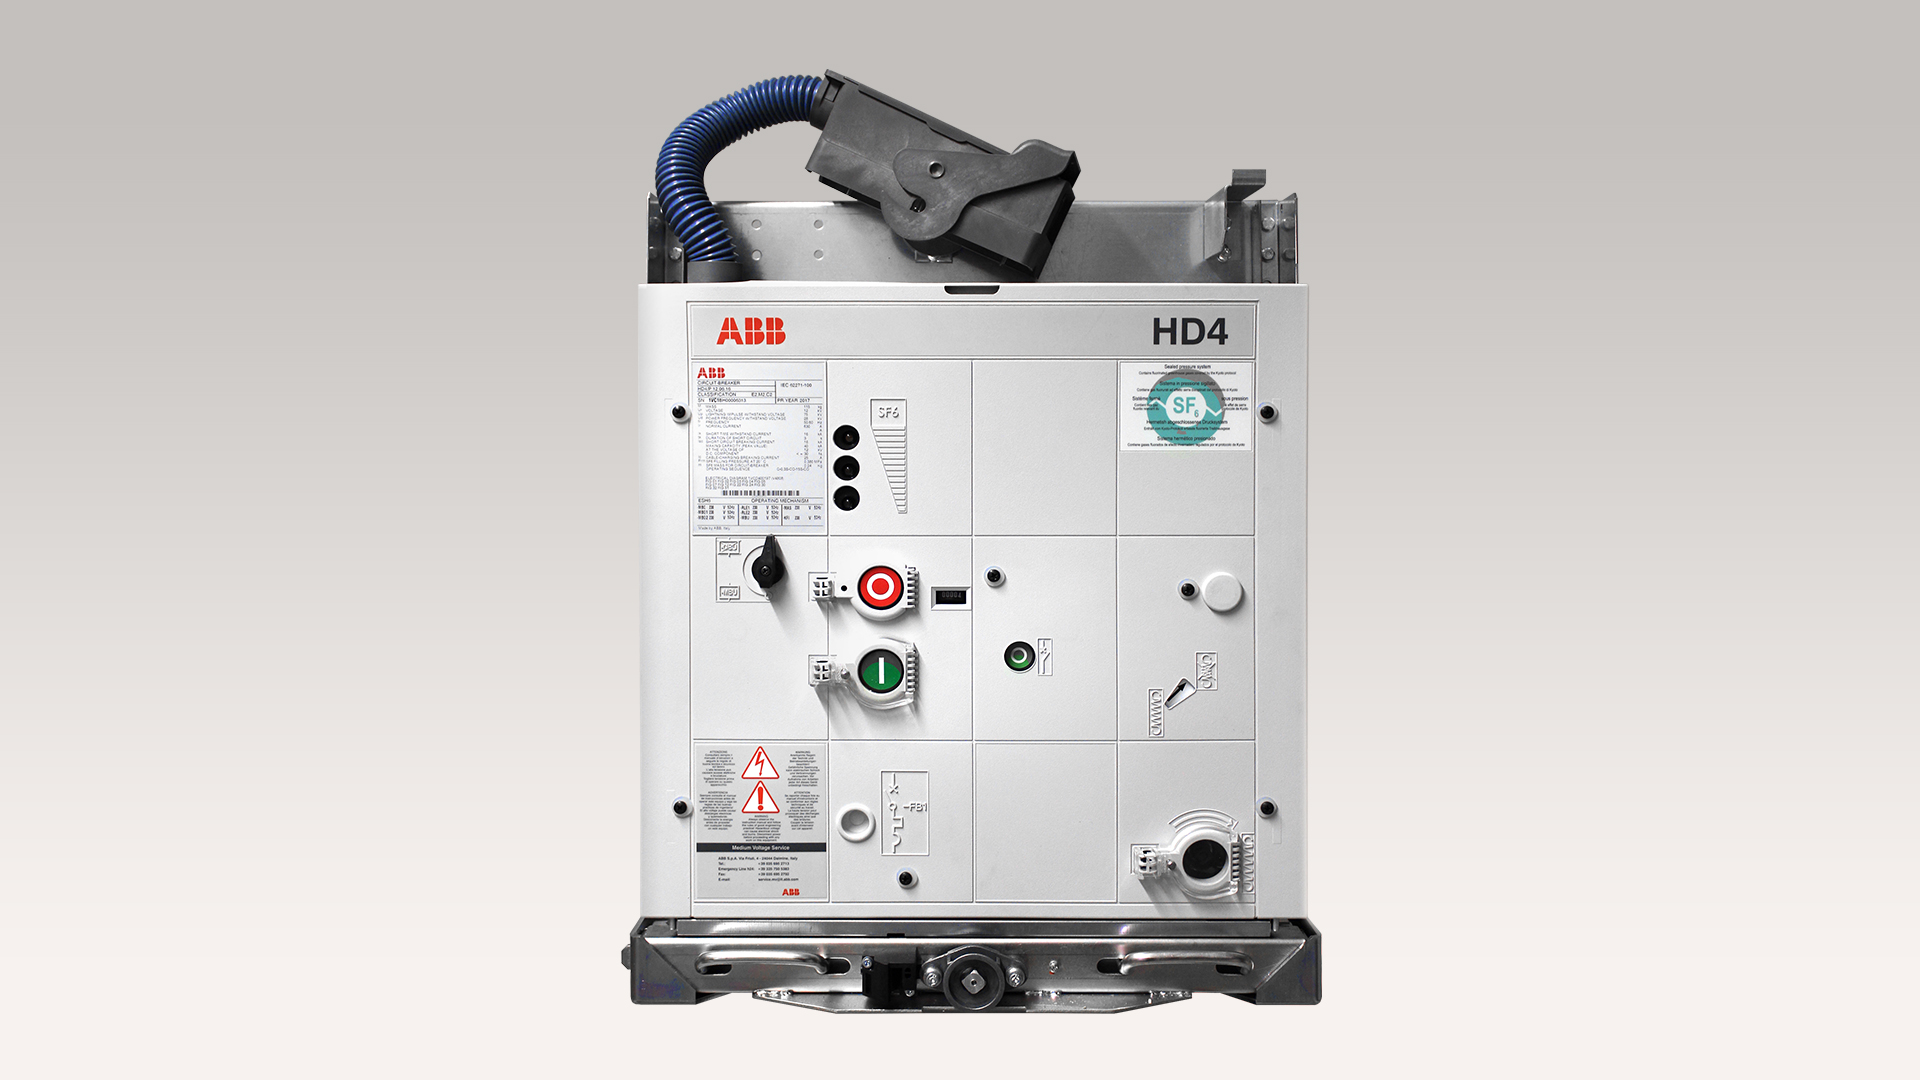 Ac Generator Wiring Schematic further Mcb Circuit Diagram further Perfect Automation Icons together with Soundproof Type 500kva Deutz Industrial Land 1507027454 in addition Apfc Panel Wiring Diagram Pdf. on generator synchronization panel